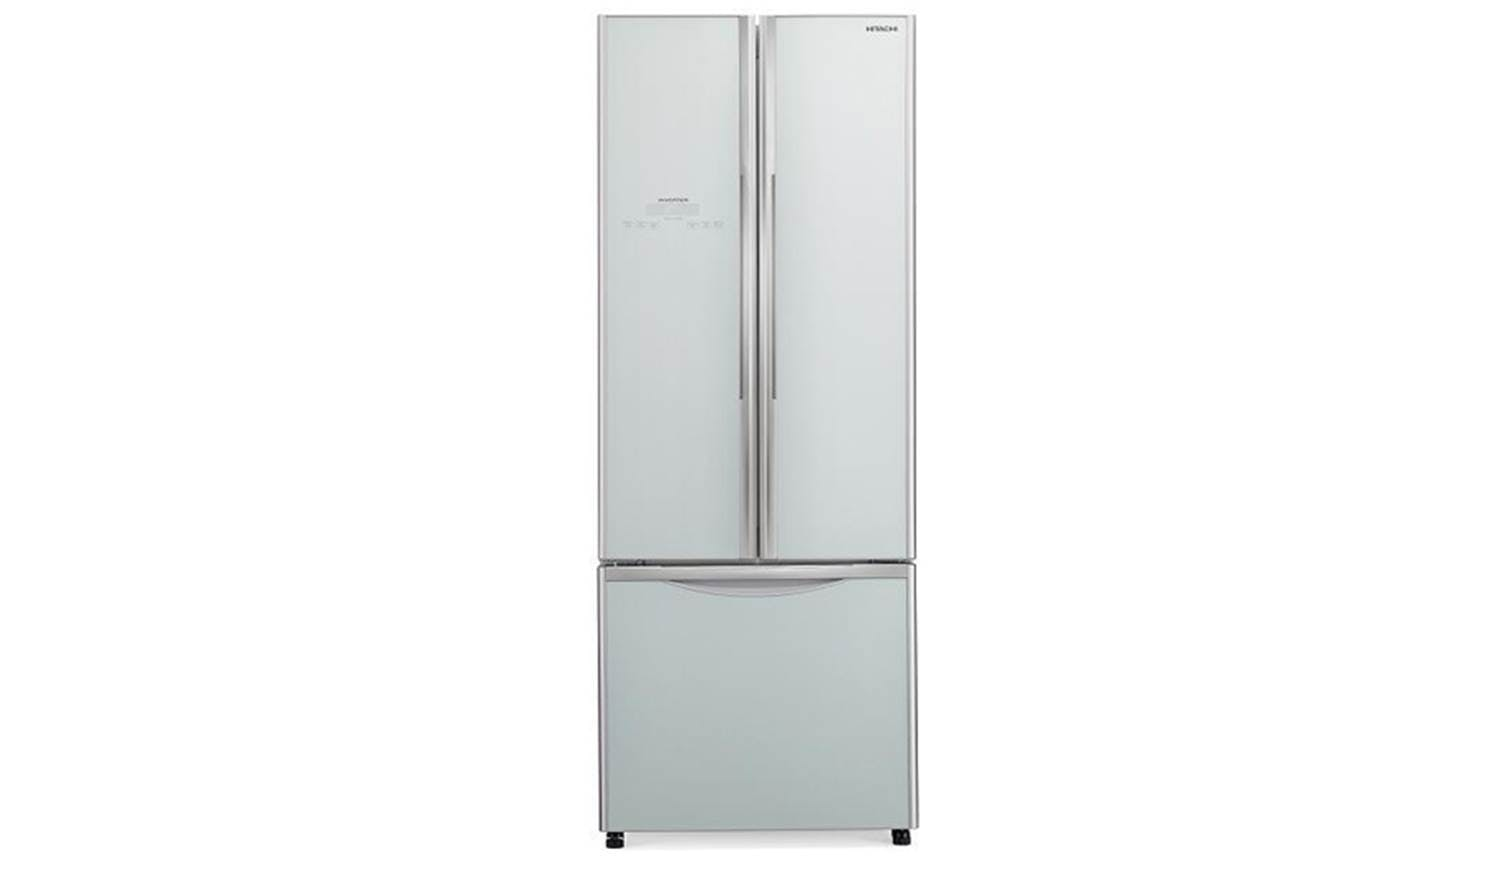 Hitachi 405l French Door Refrigerator White Harvey Norman Singapore